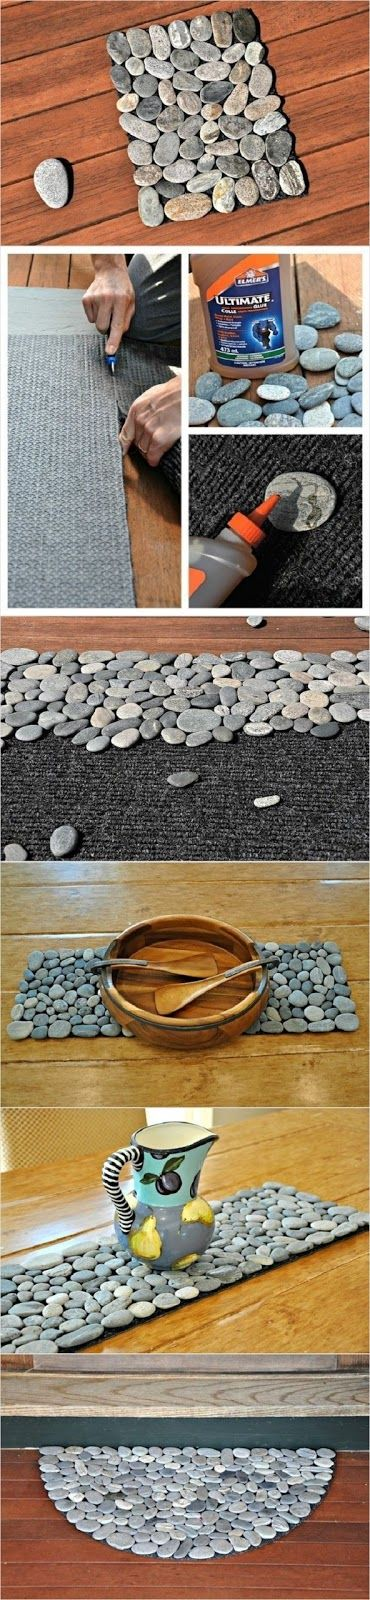 pebble runner/hot pad? The rocks would have to be pretty lightweight